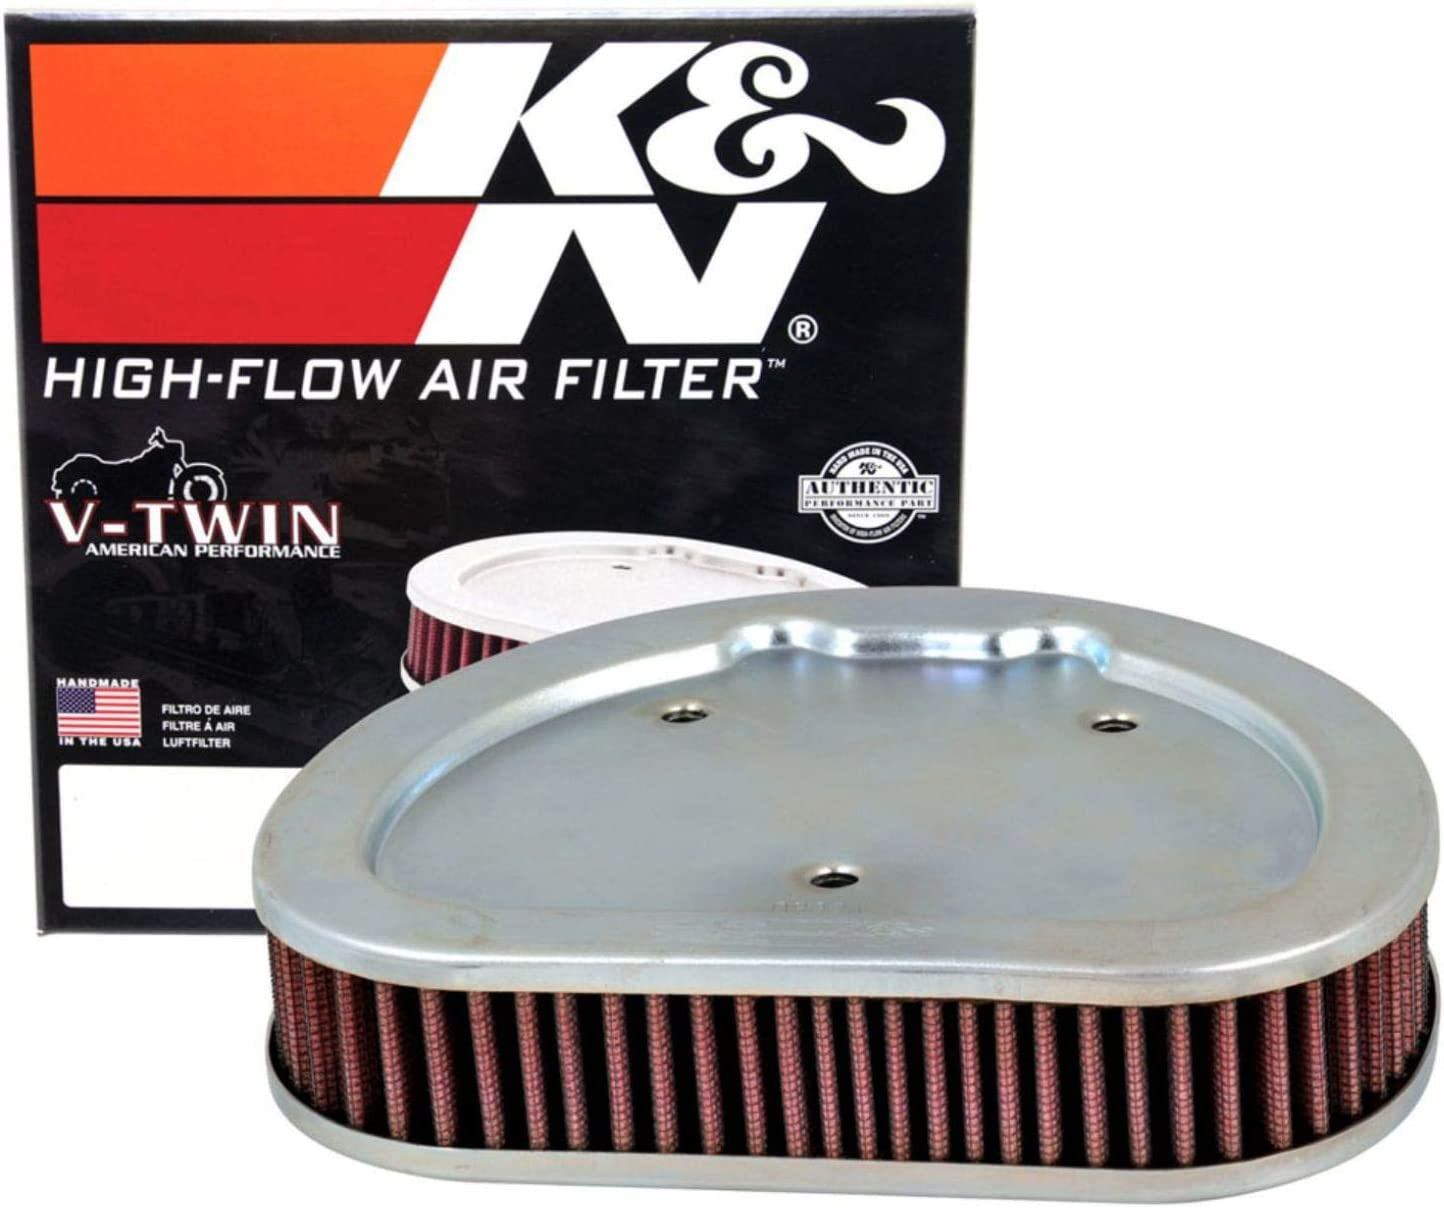 K&N Motorcycle Air Filter: High Flow Performance Air Filter